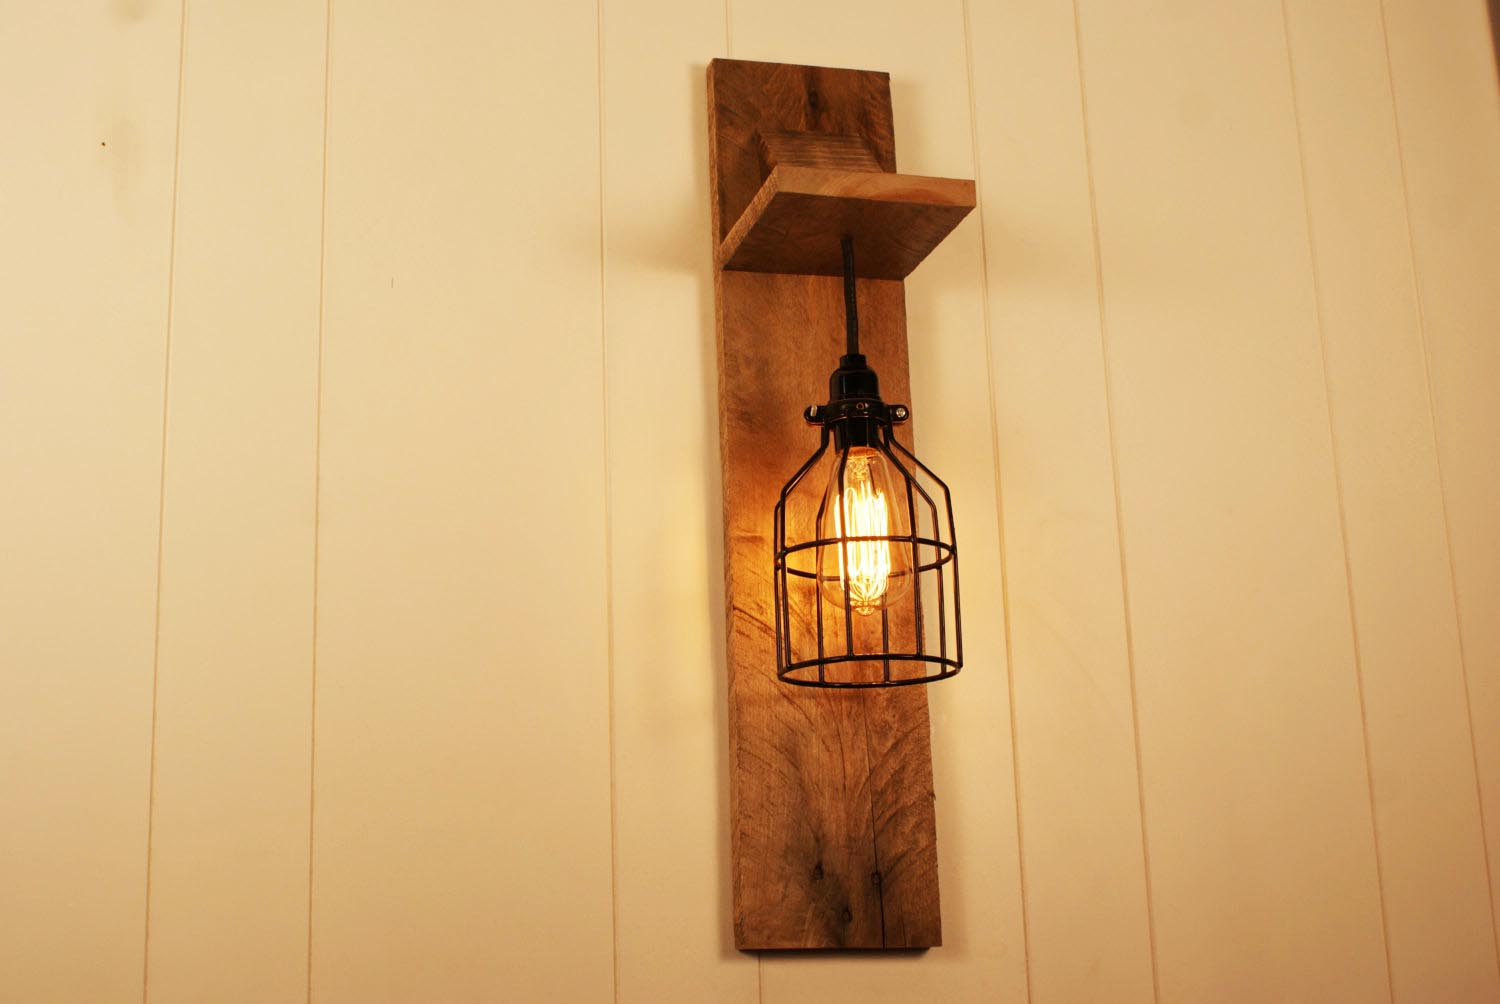 Wall mounted light fixtures  more than just beautiful